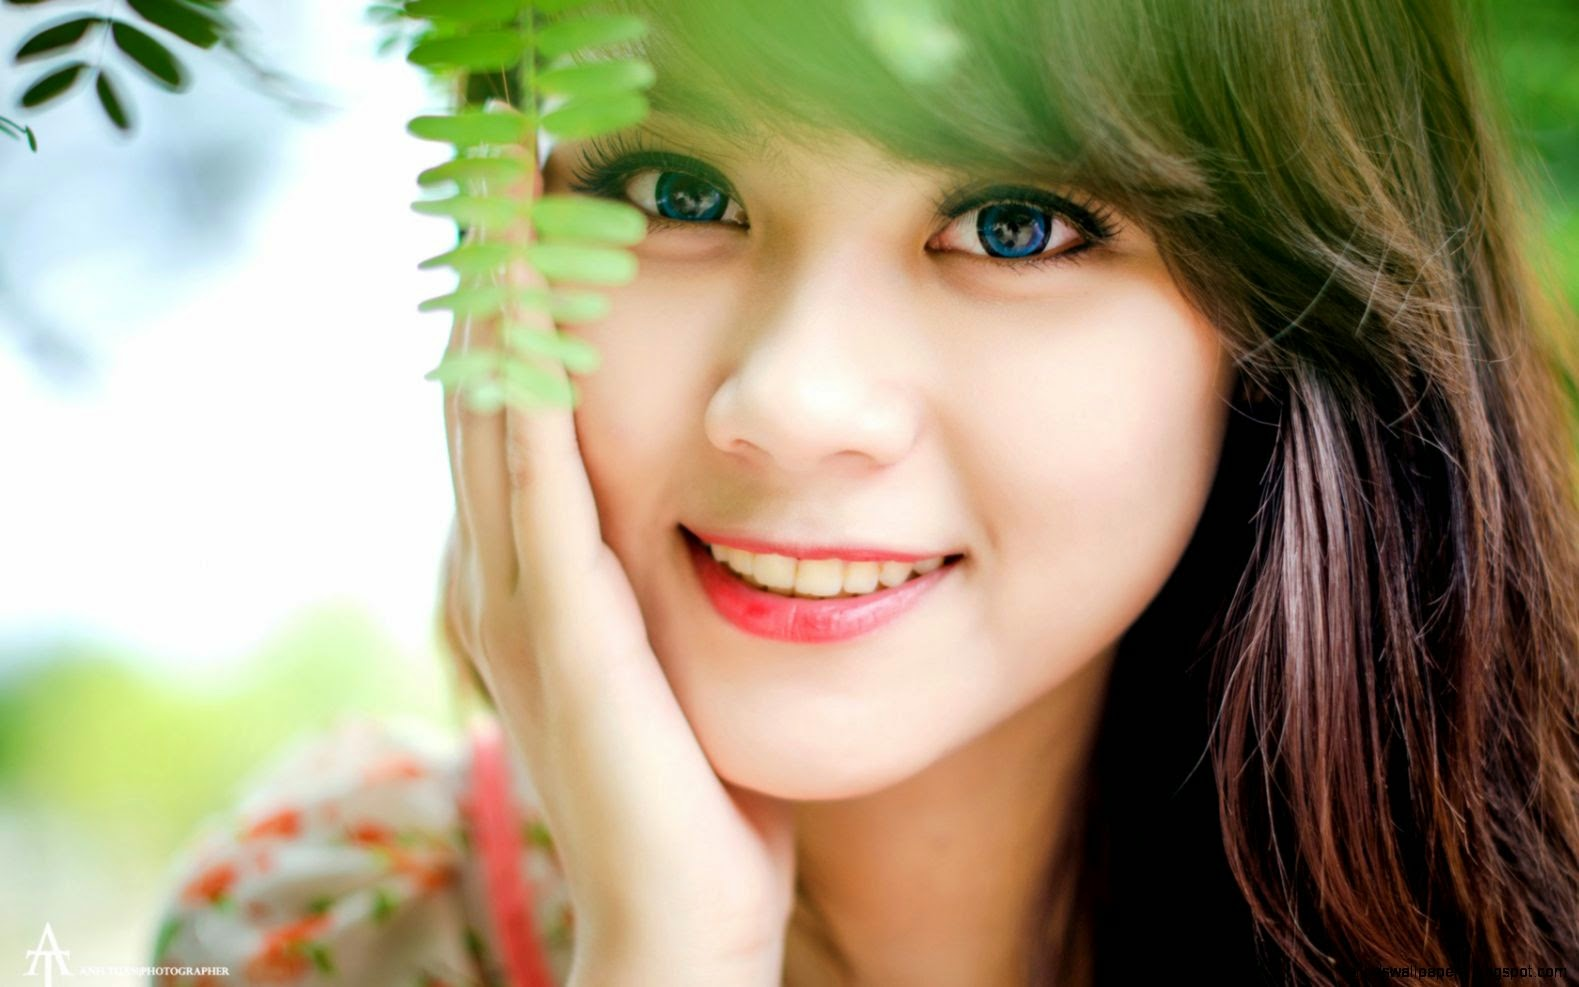 Cute Girl Wallpapers Hd   All HD Wallpapers